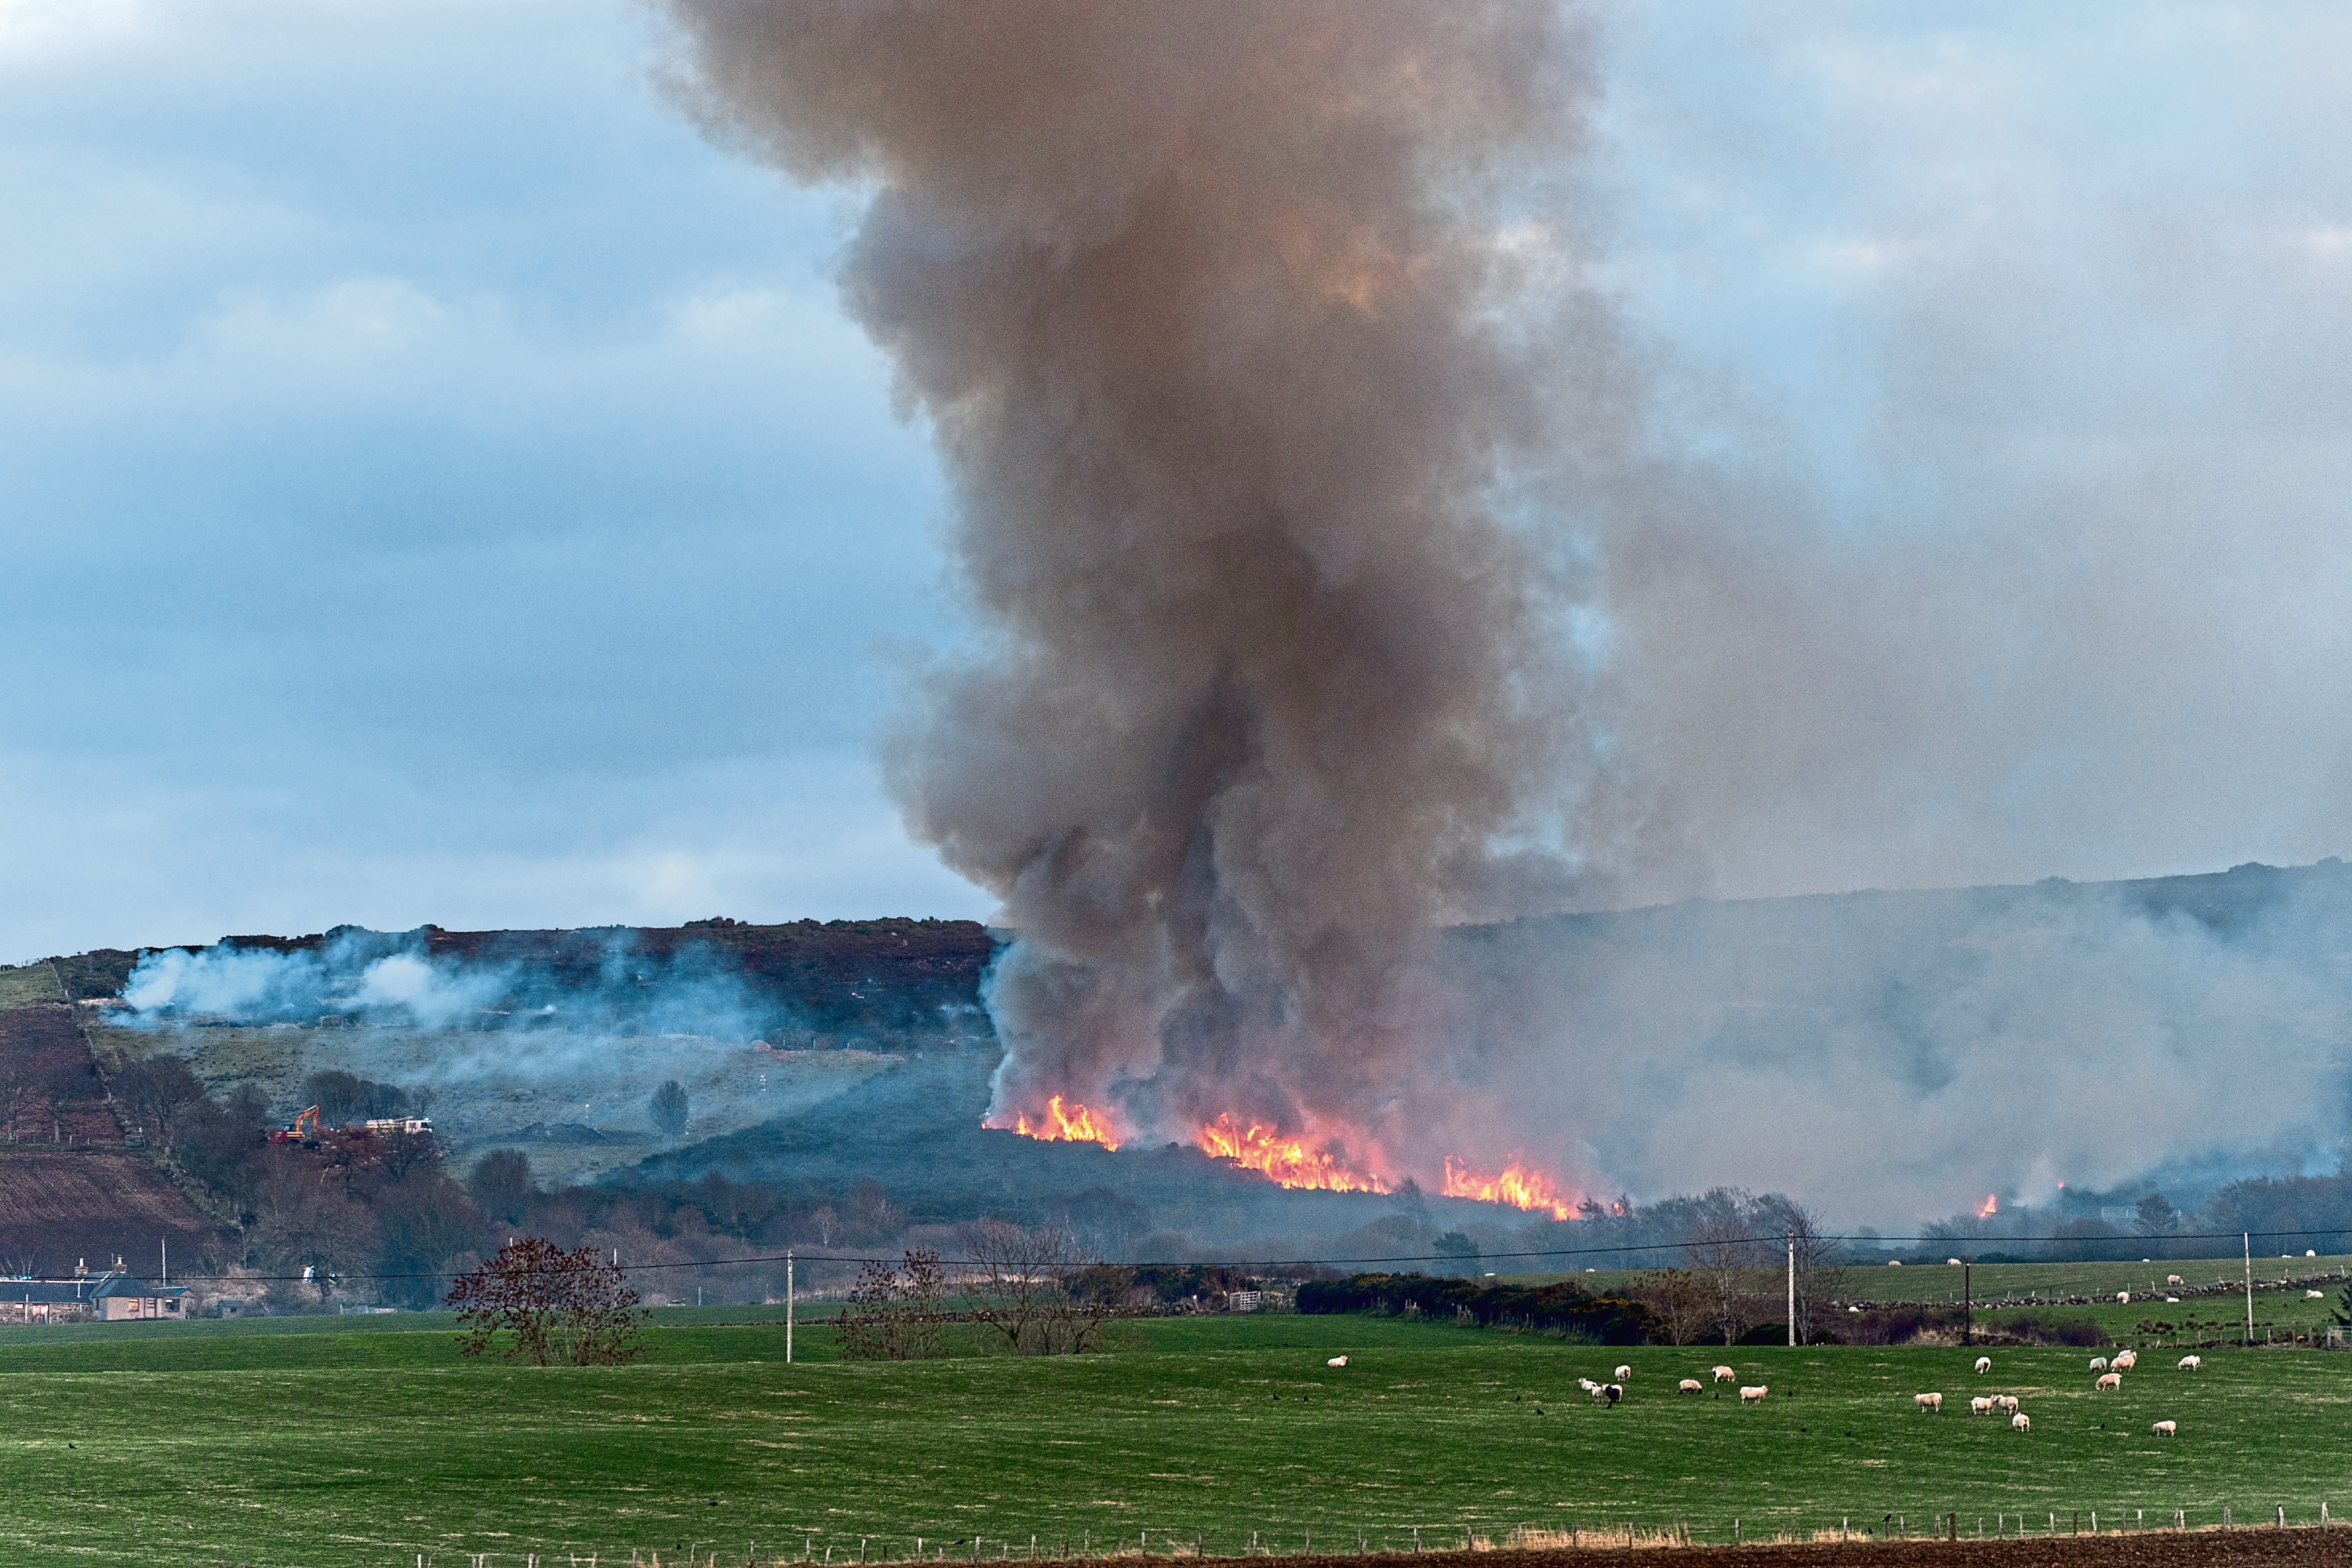 The scene of the gorse fire which broke out near Banff